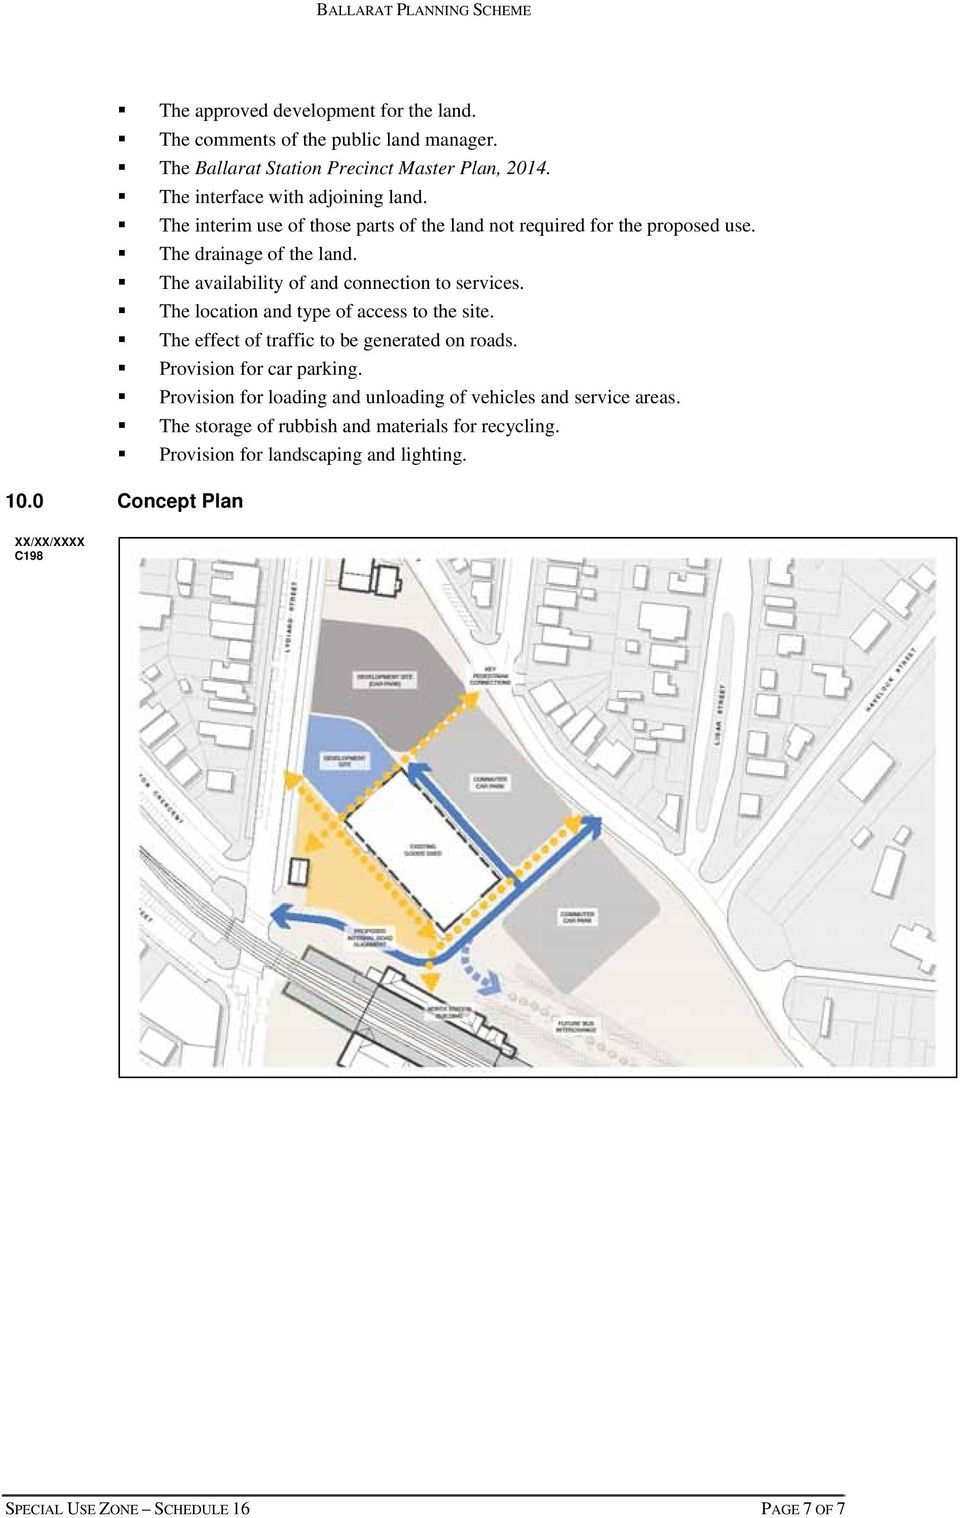 The location and type of access to the site. The effect of traffic to be generated on roads. Provision for car parking.